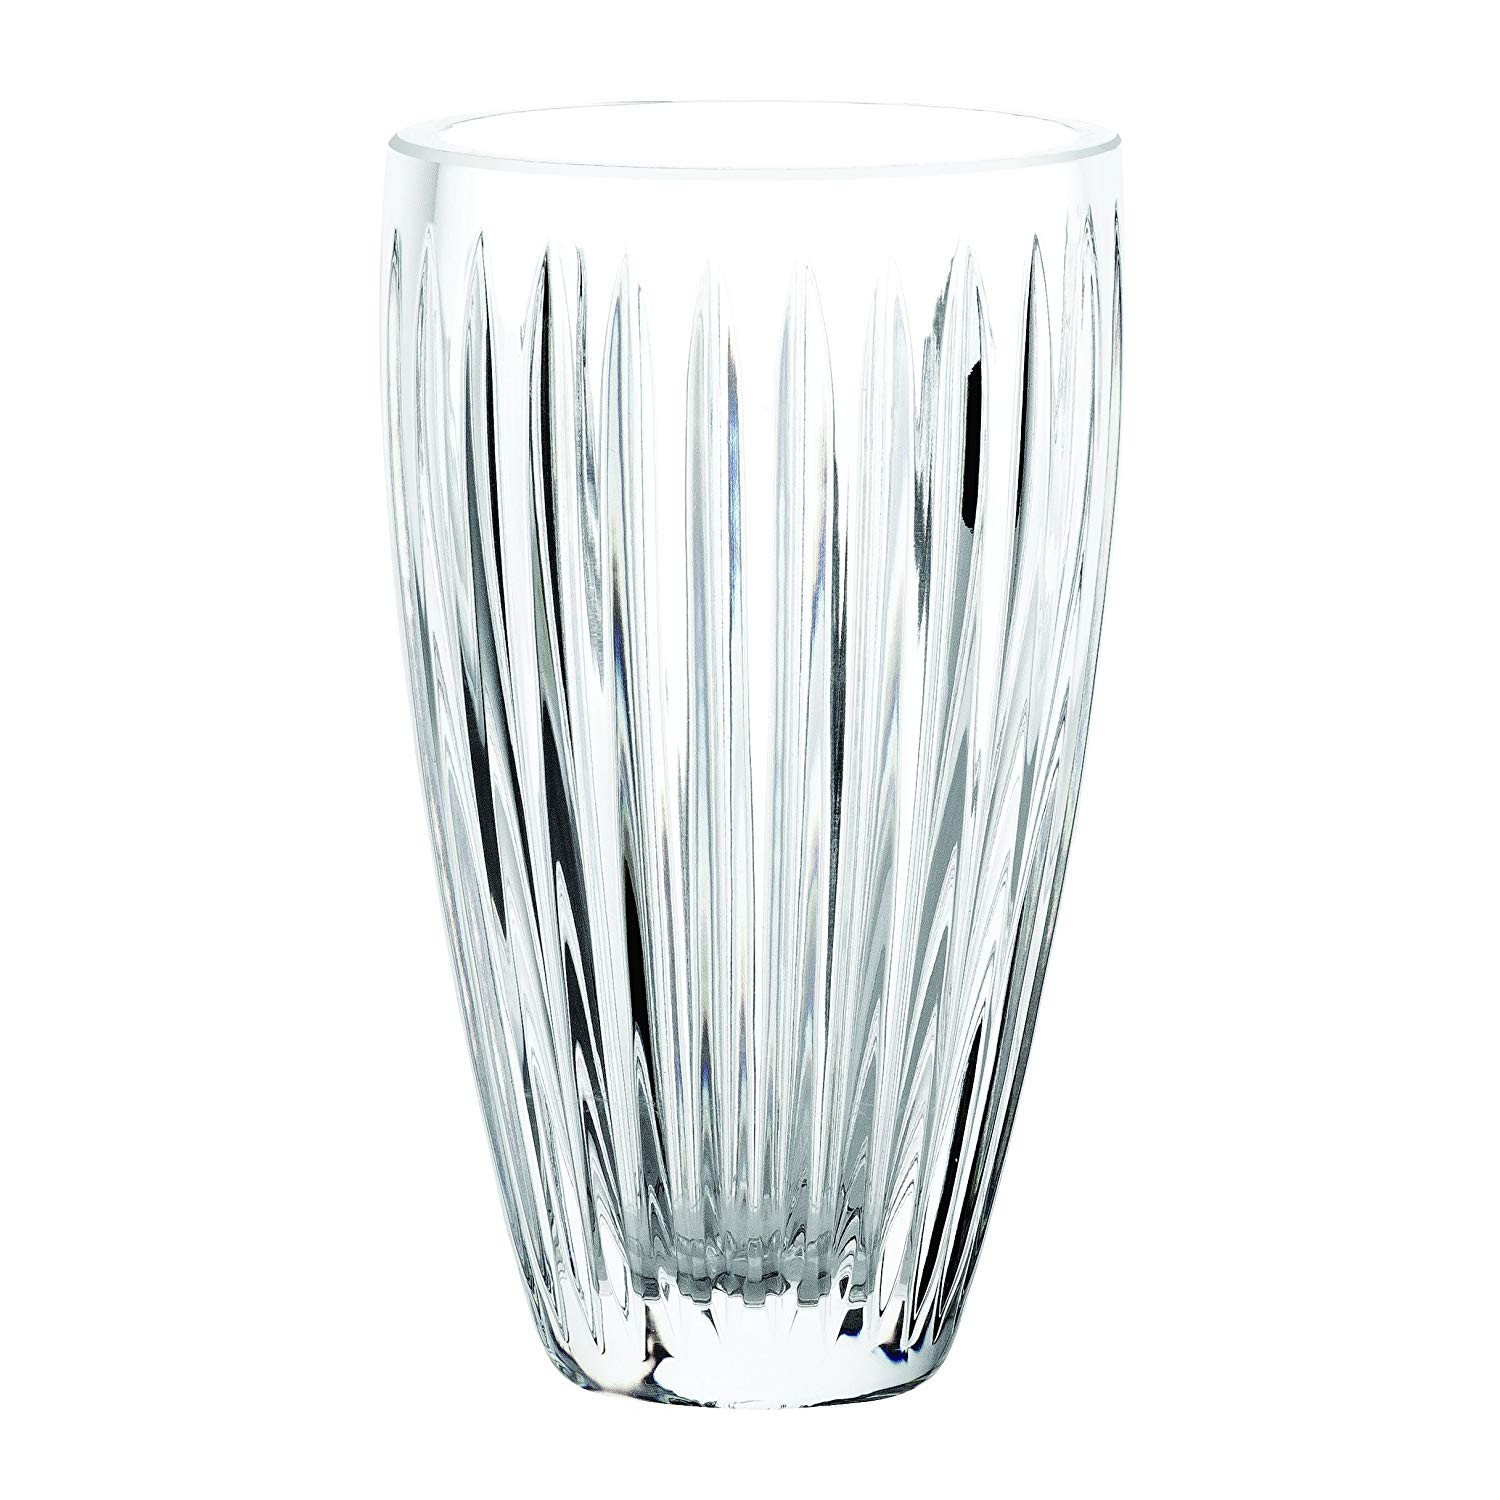 mikasa blossom crystal vase of amazon com marquis by waterford bezel vase 10 inch home kitchen throughout 91mkxddybml sl1500